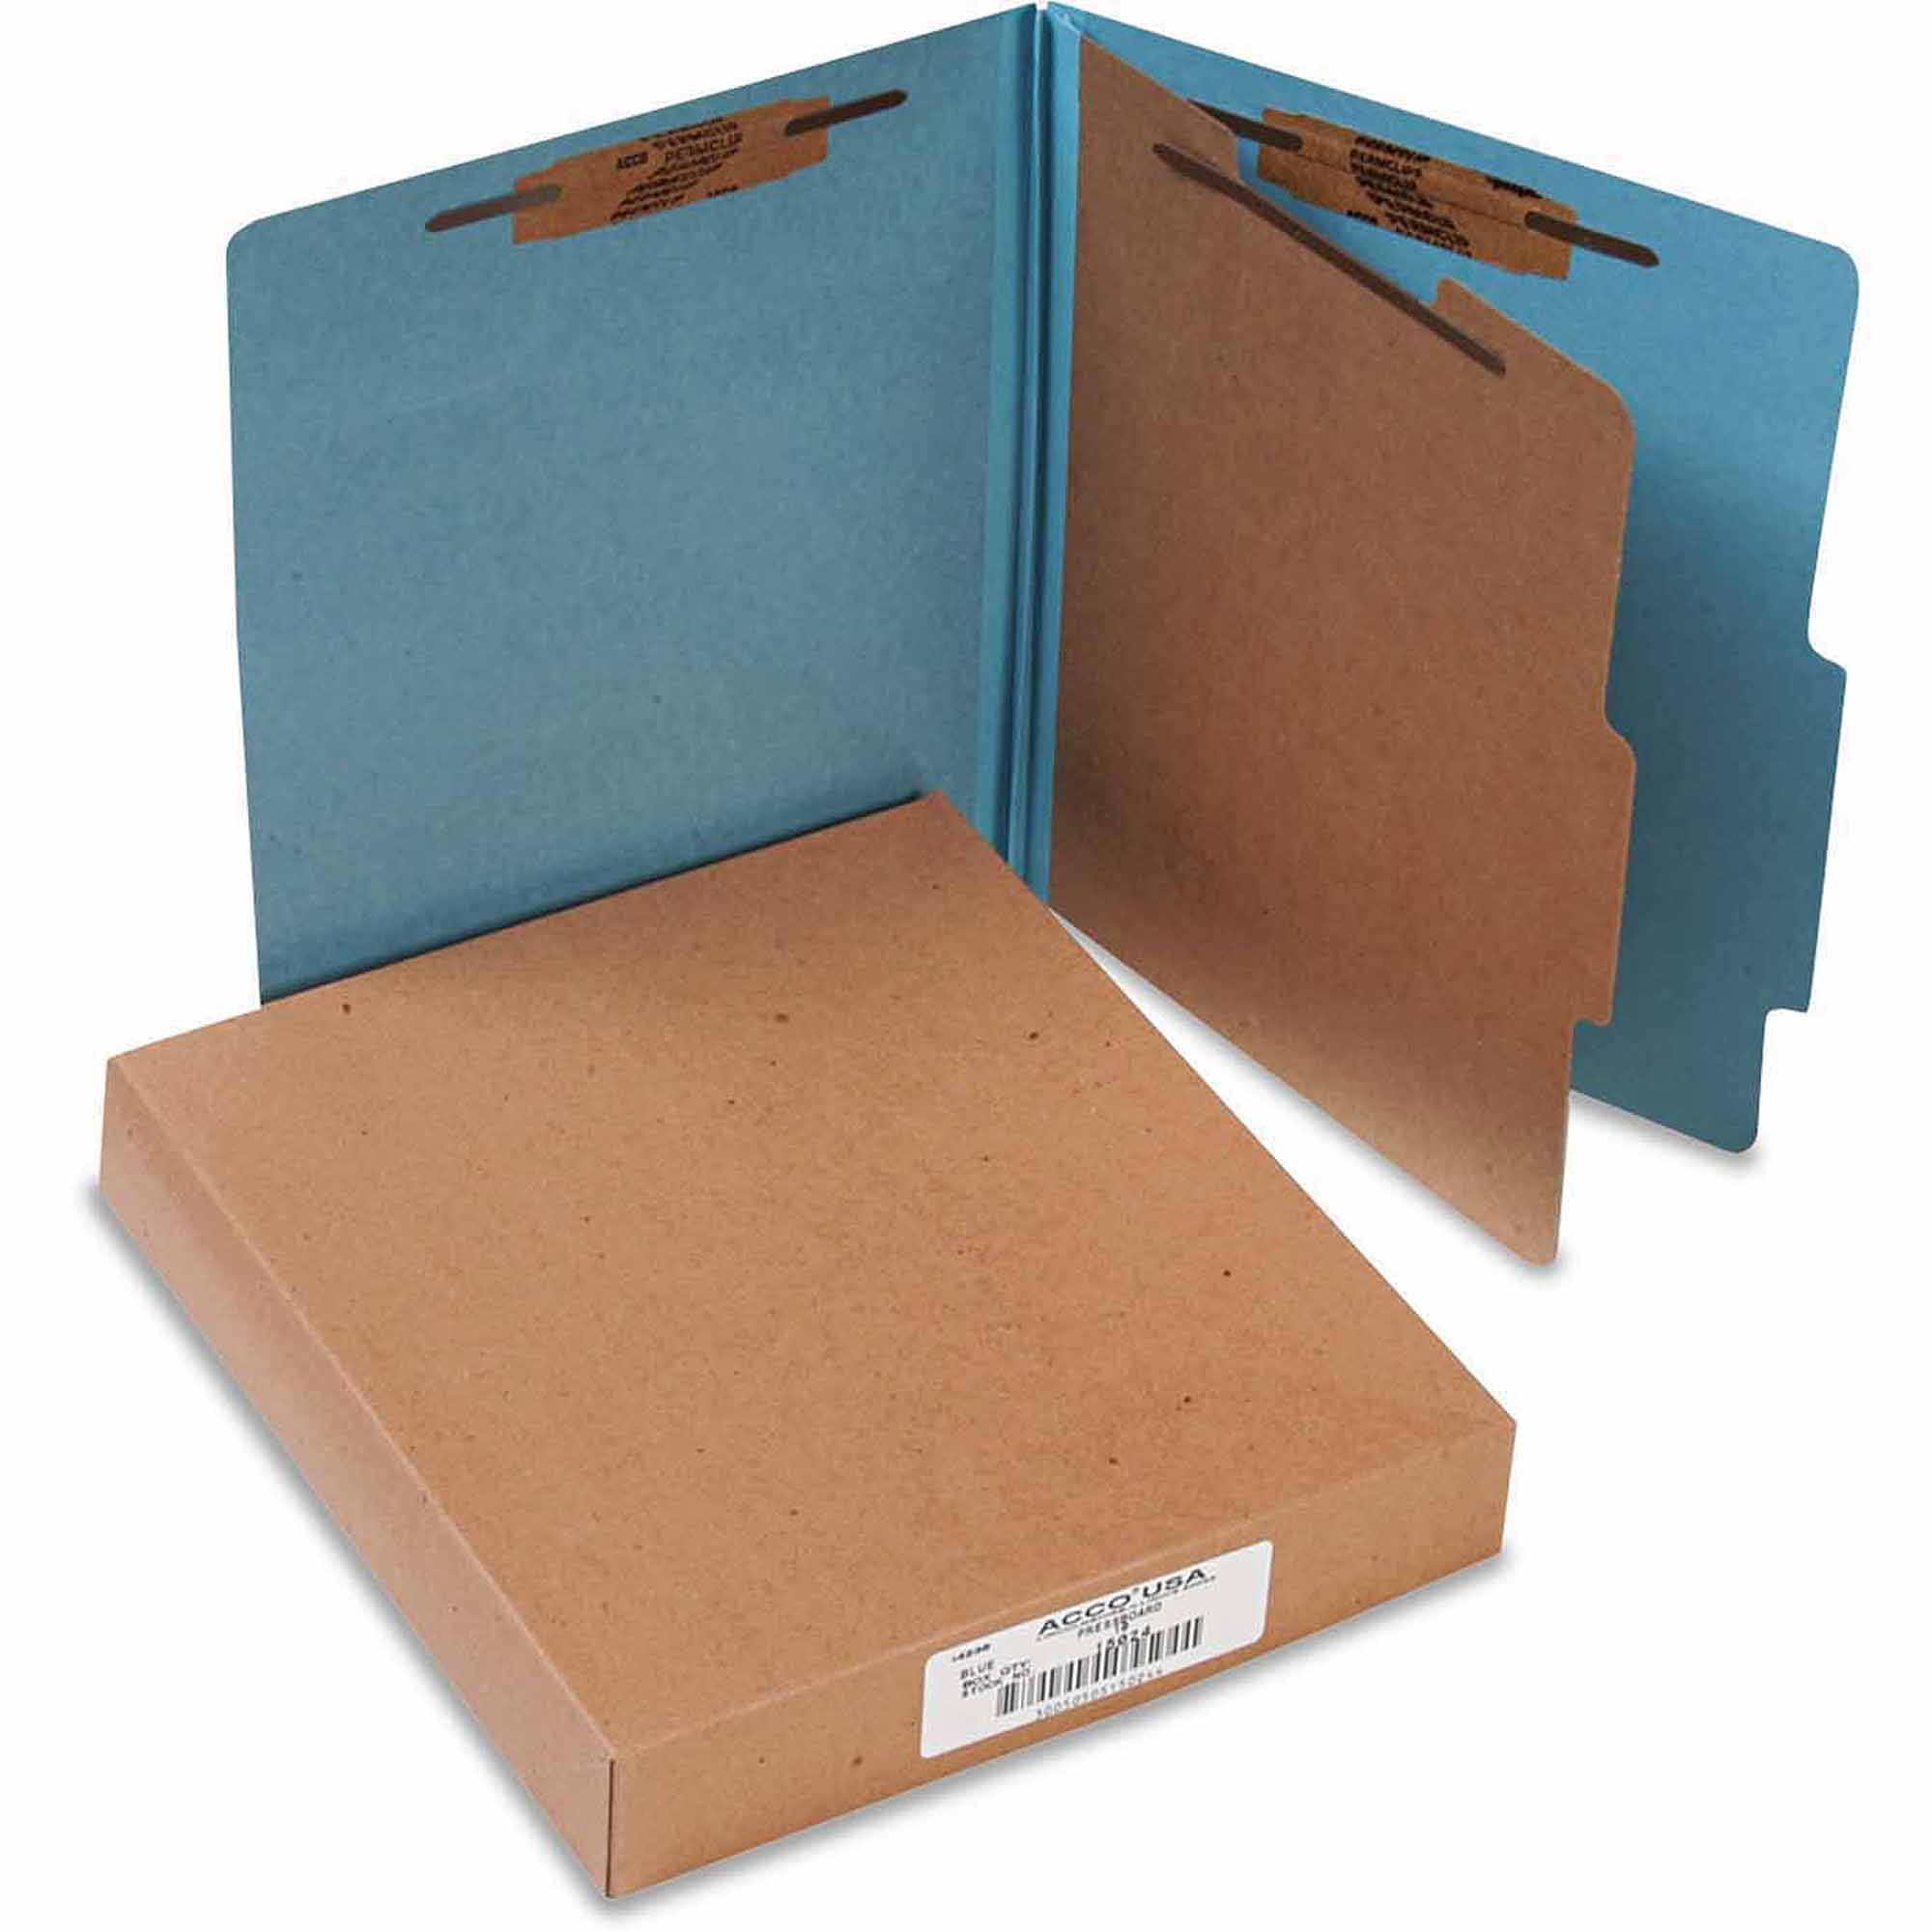 ACCO 25-Point Pressboard Classification Folders, Letter, 4-Section, Sky Blue, 10-Pack